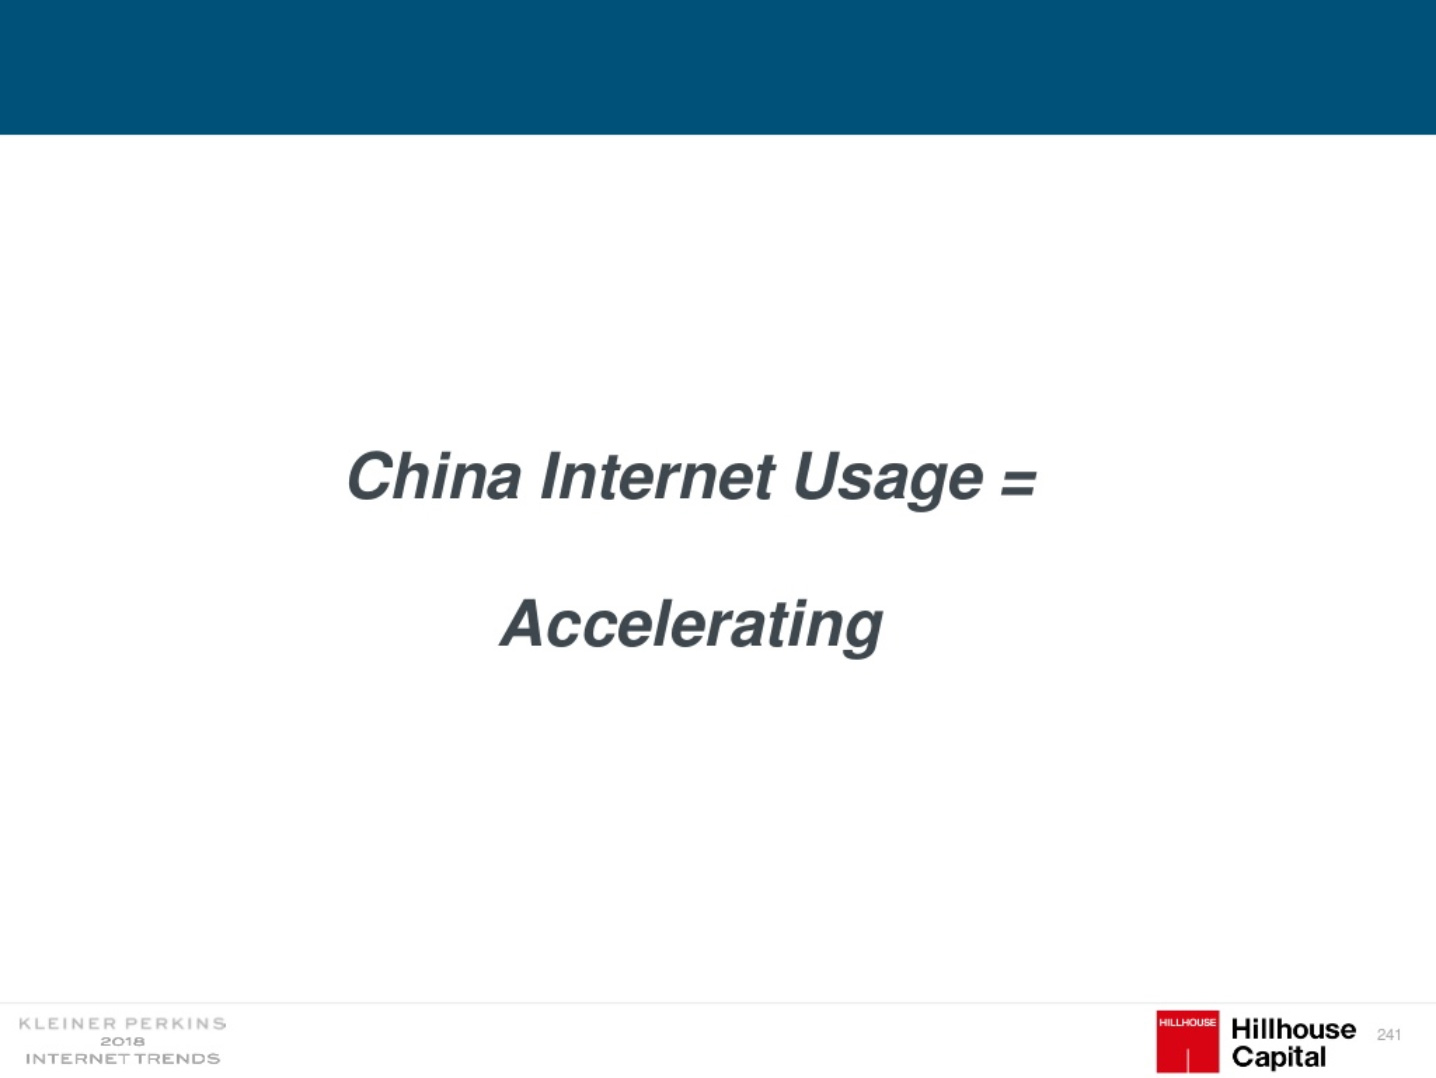 More people use internet in China by the year